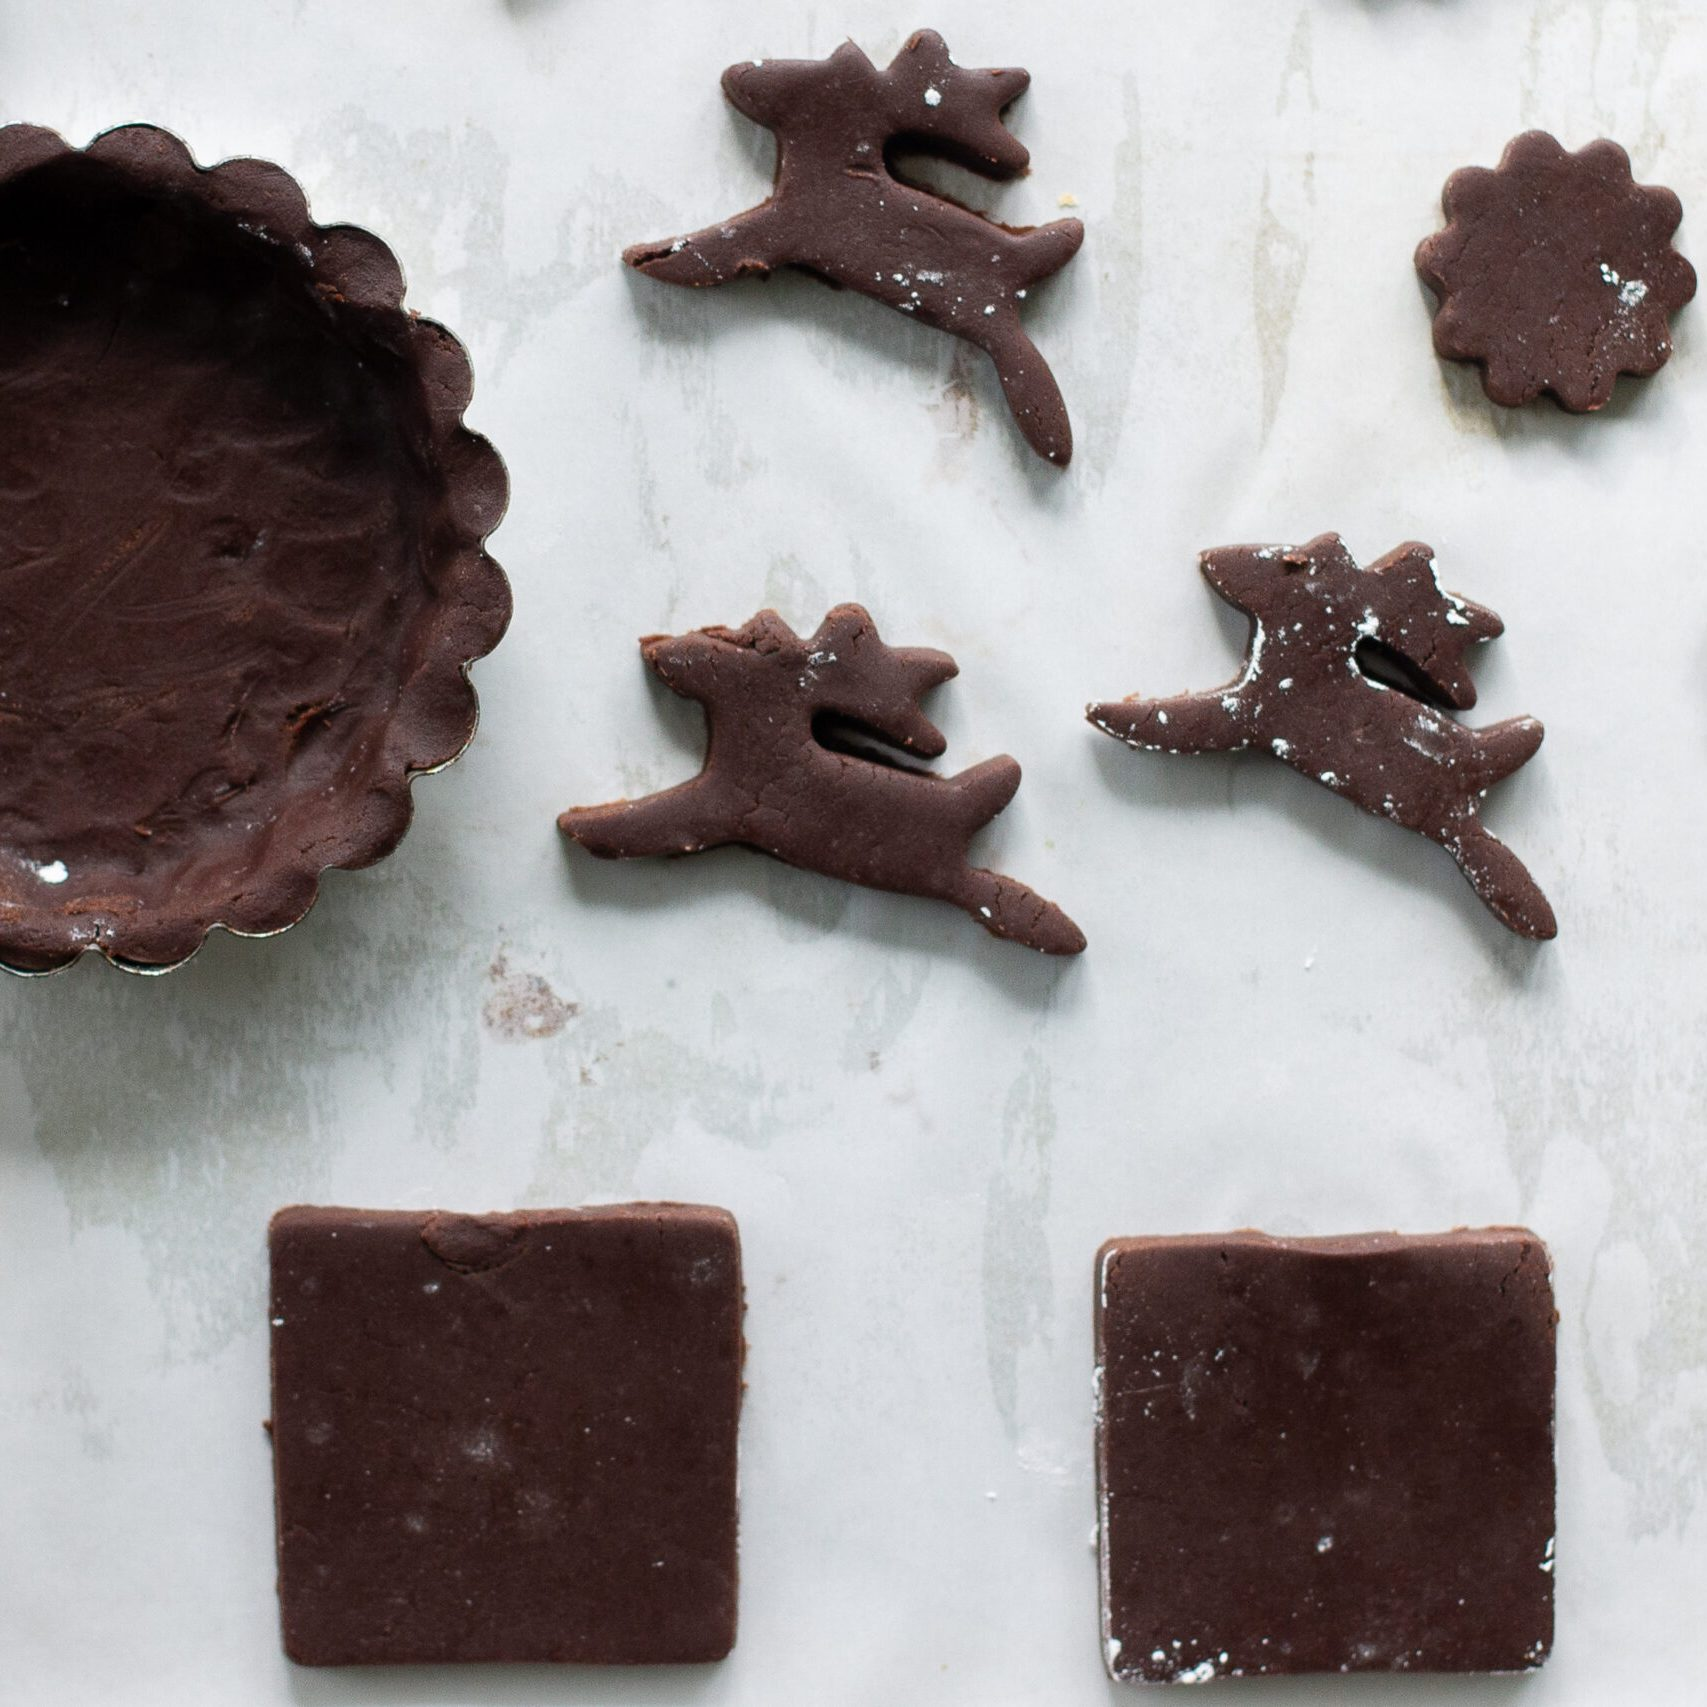 Cutting and shaping chocolate shortbread.